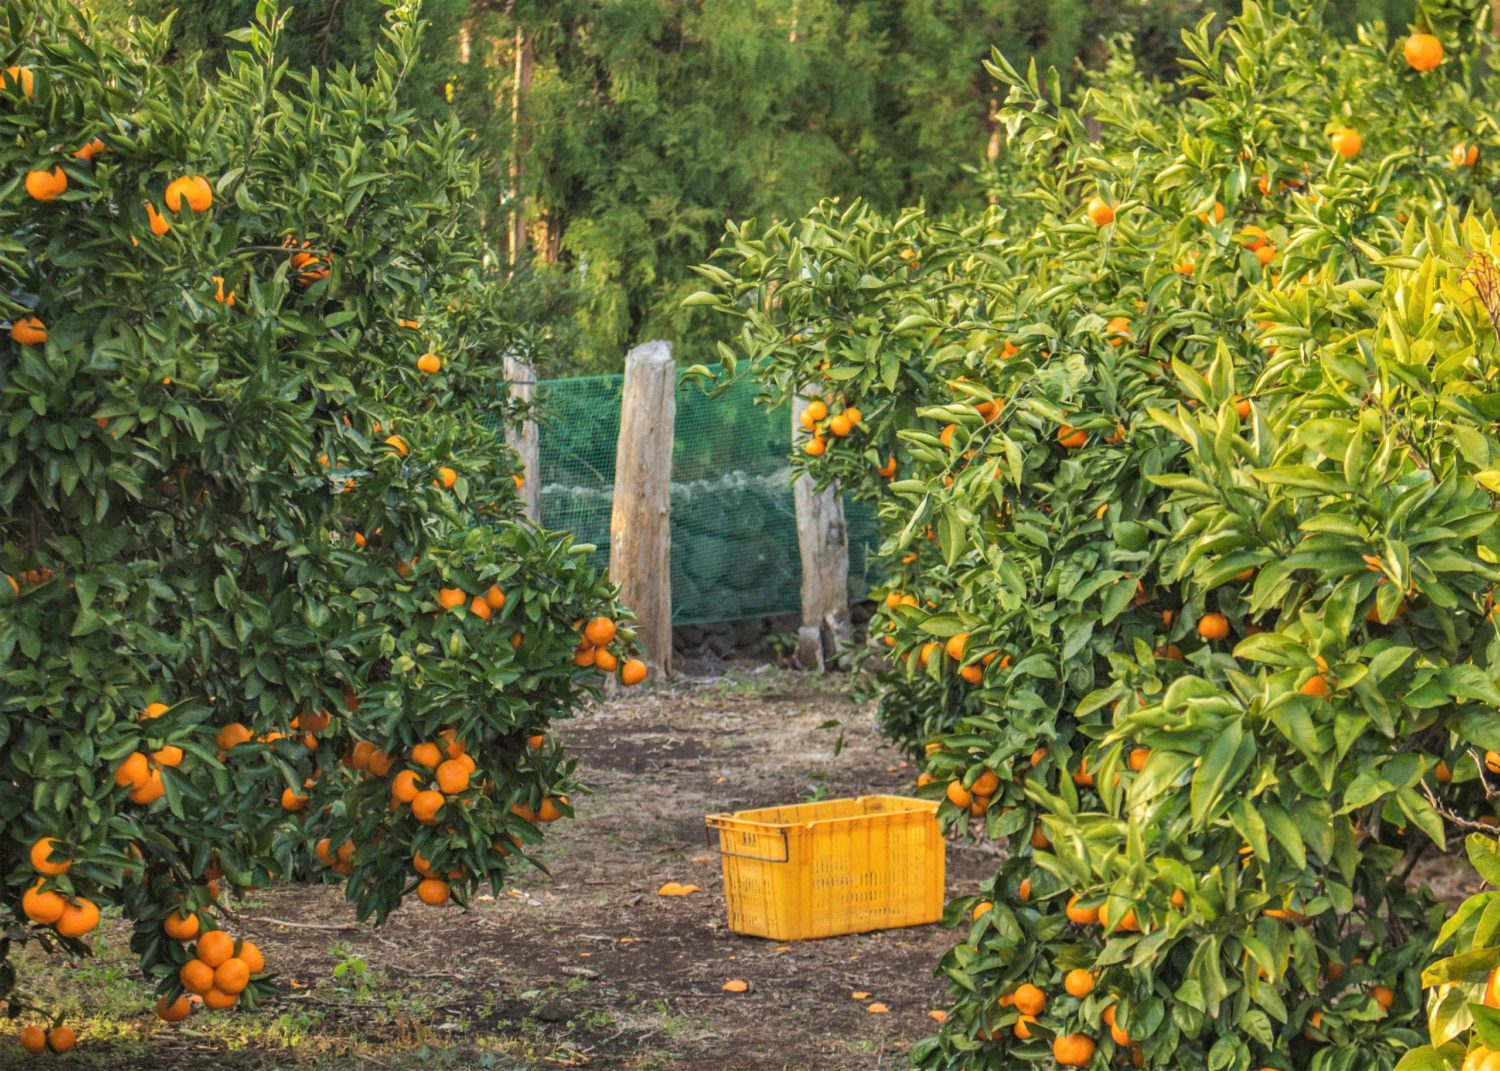 Mzansi's citrus industry is still picking up the pieces after enduring a chaotic citrus season this year. Photo: